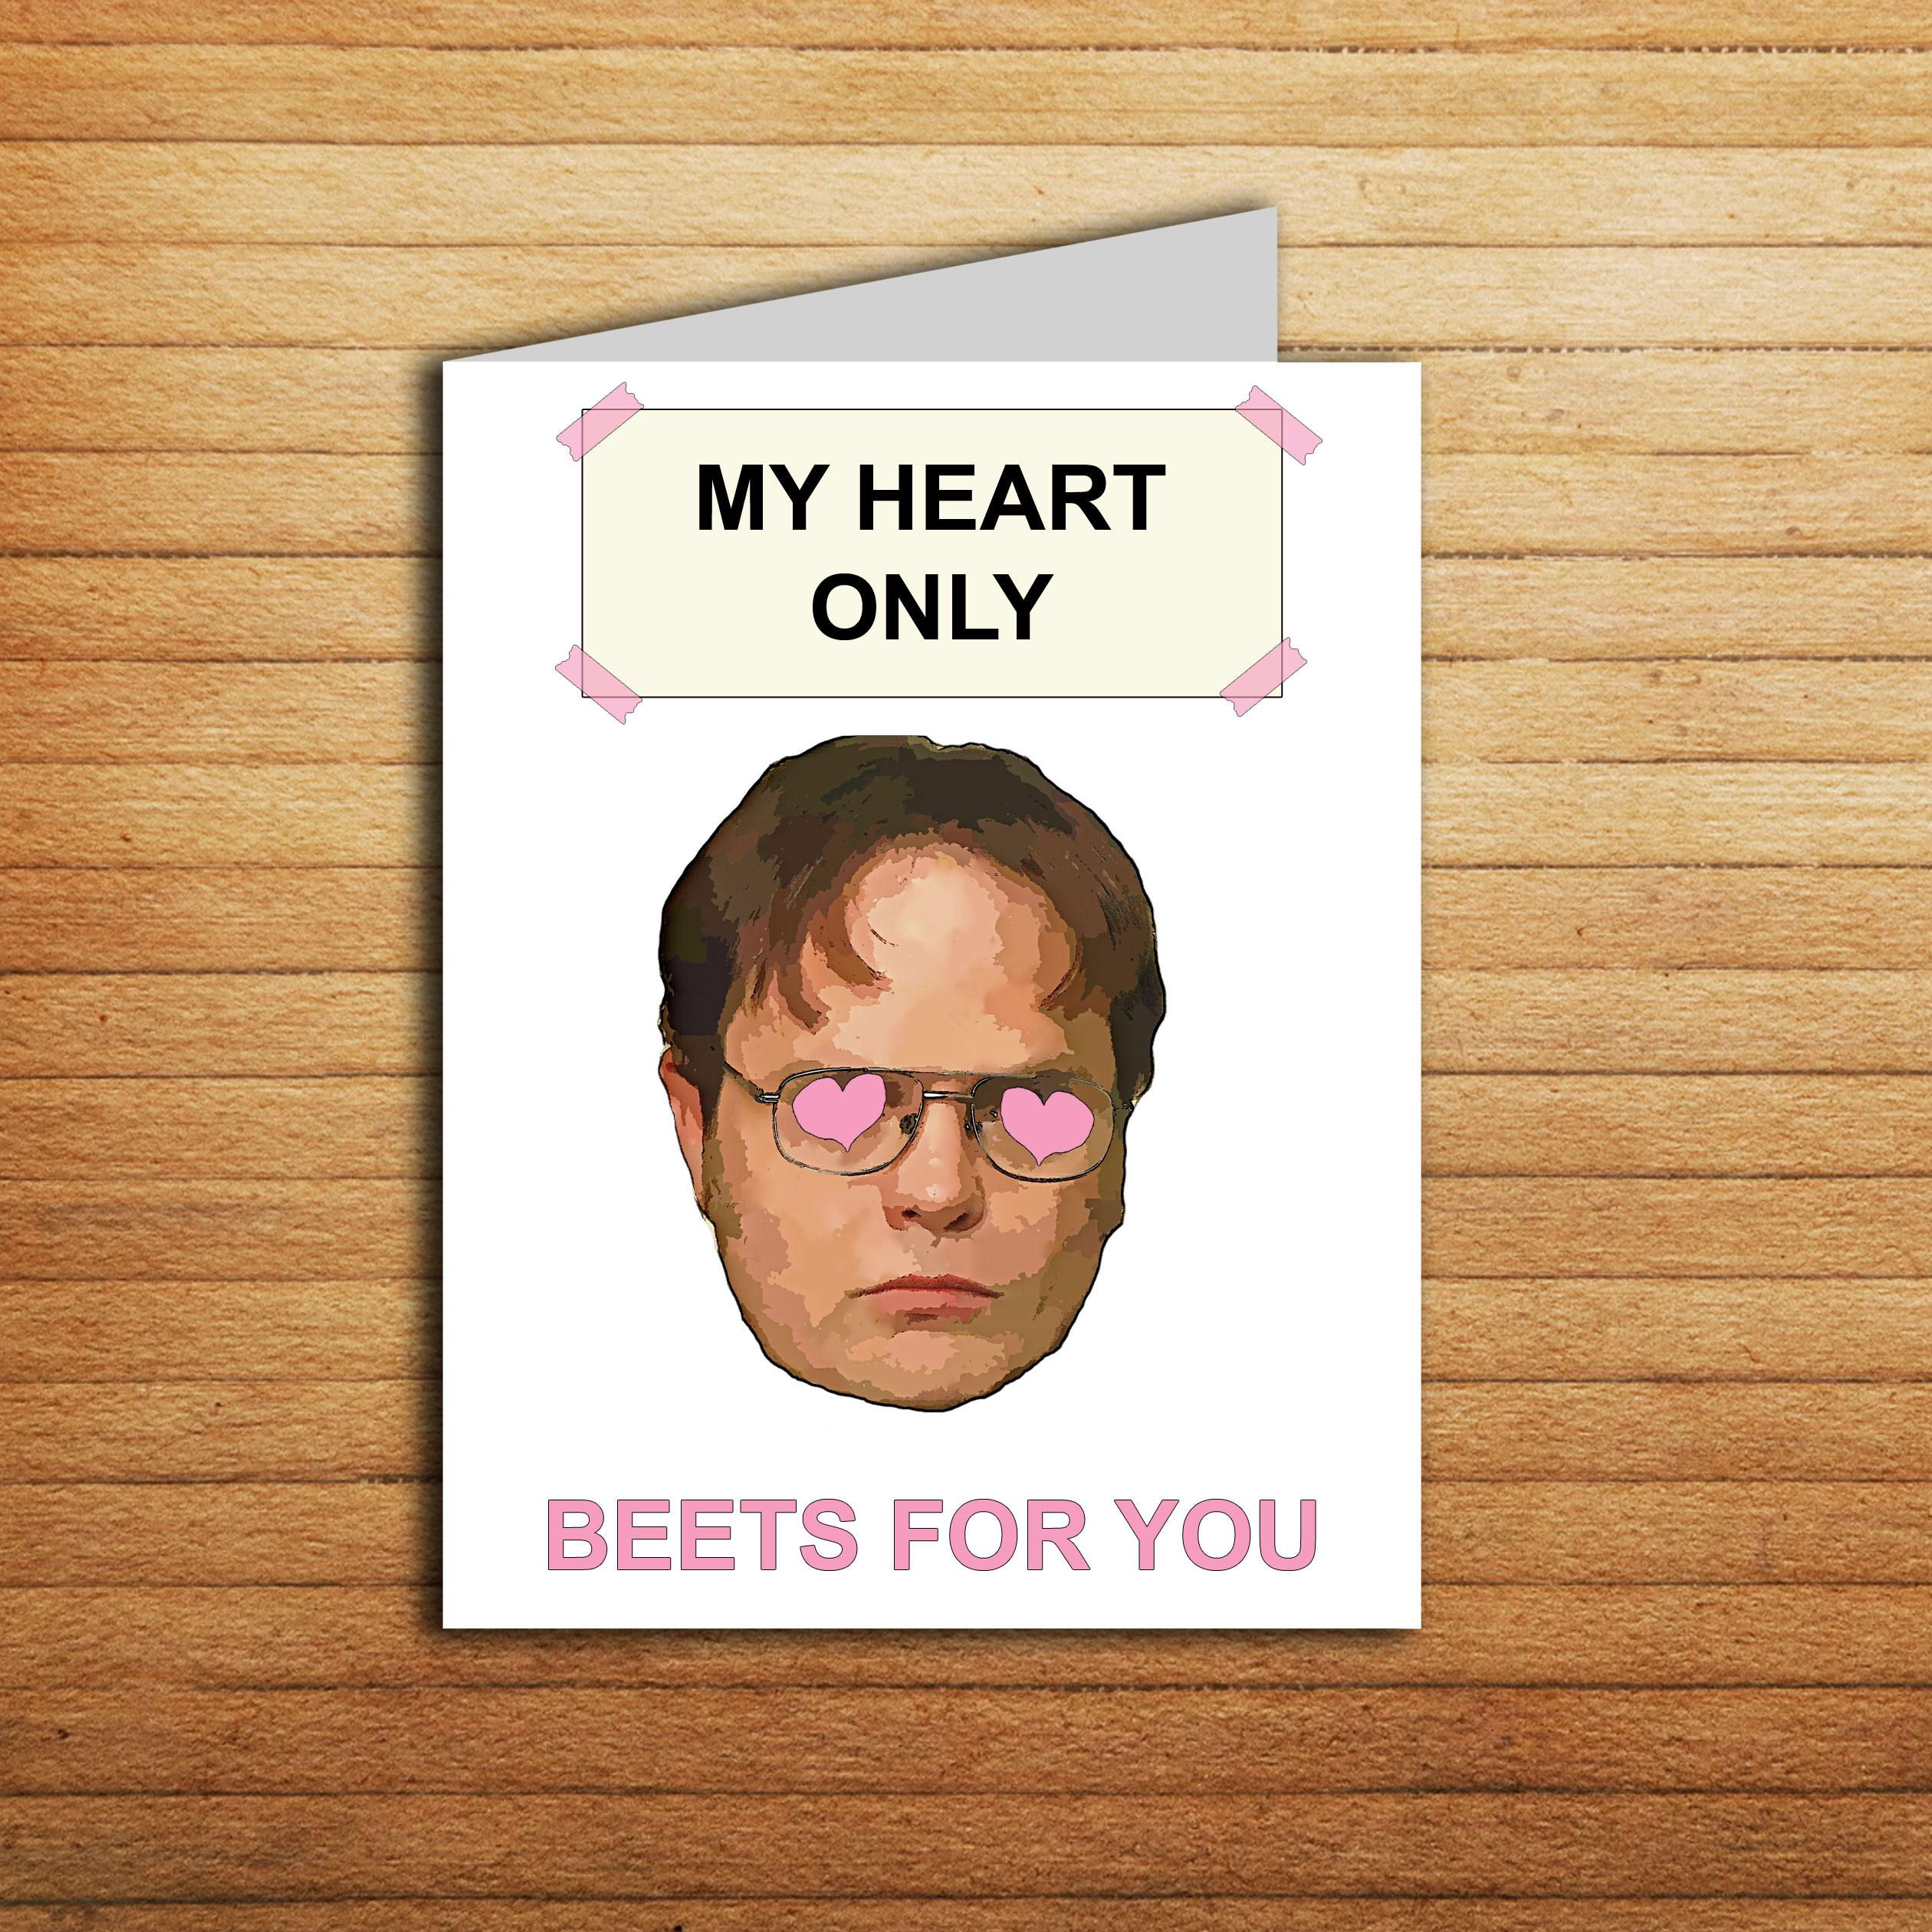 The Office Valentines Day Card Dwight Schrute Beet Valentine Card Funny Anniversary Gift Fo The Office Valentines Diy Gifts For Him Boyfriend Anniversary Gifts The office valentines day card